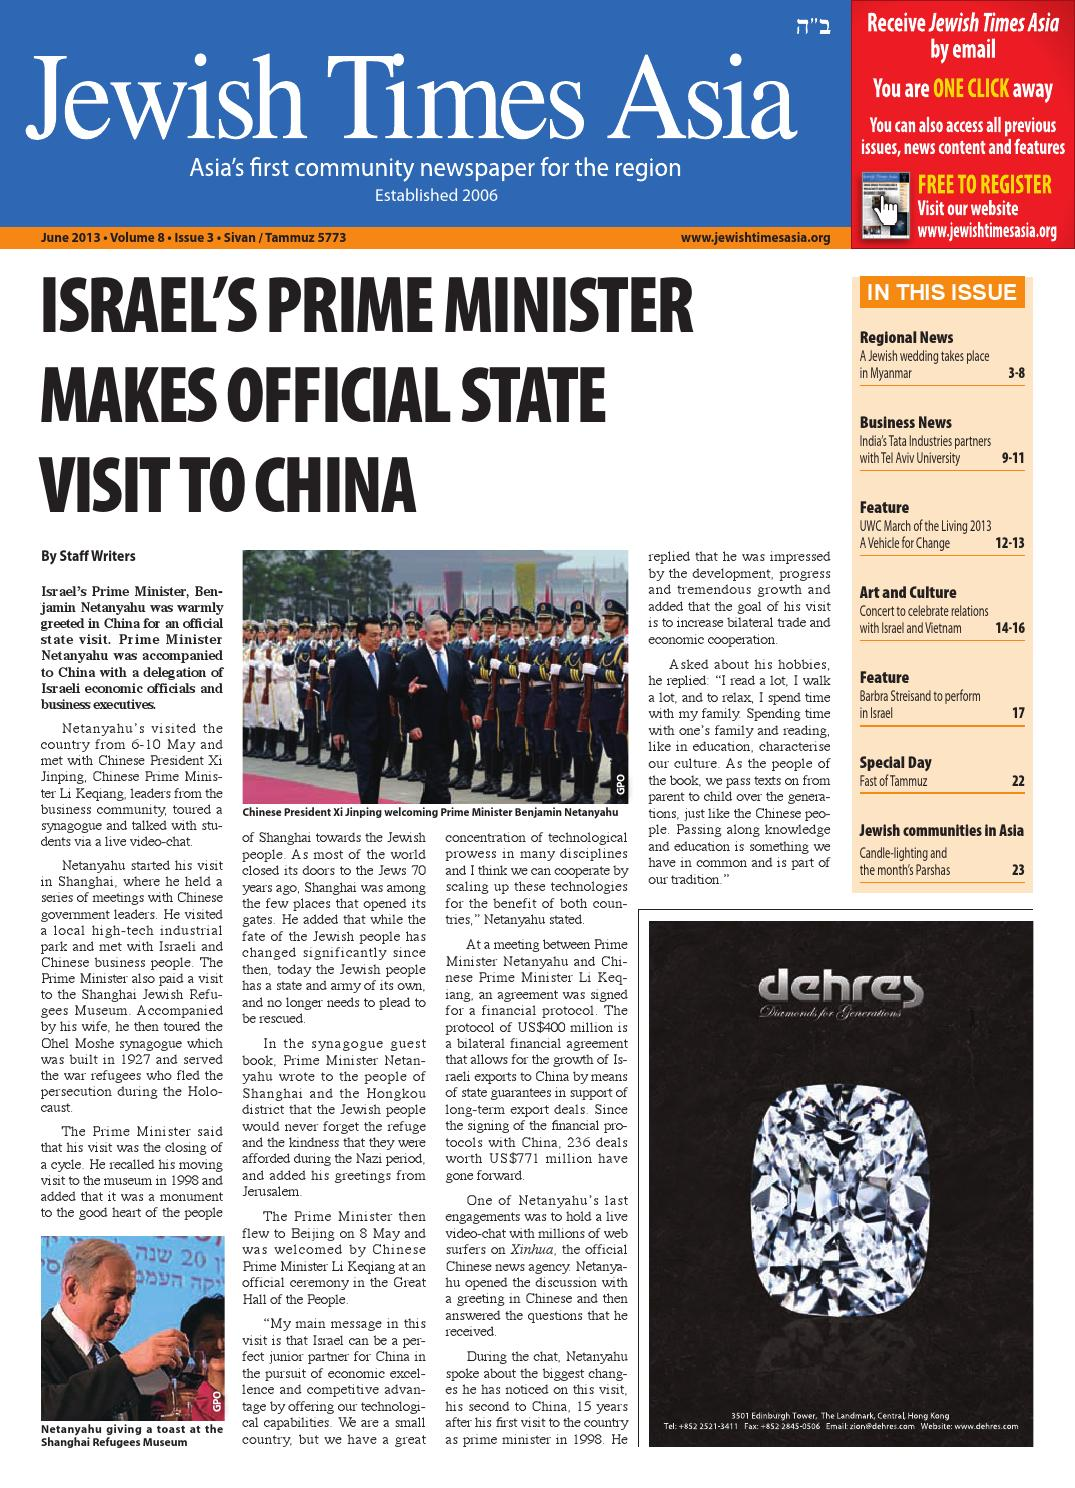 June 2013 volume 8 issue 3 sivan tammuz 5773 by jewish times june 2013 volume 8 issue 3 sivan tammuz 5773 by jewish times asia limited issuu biocorpaavc Image collections